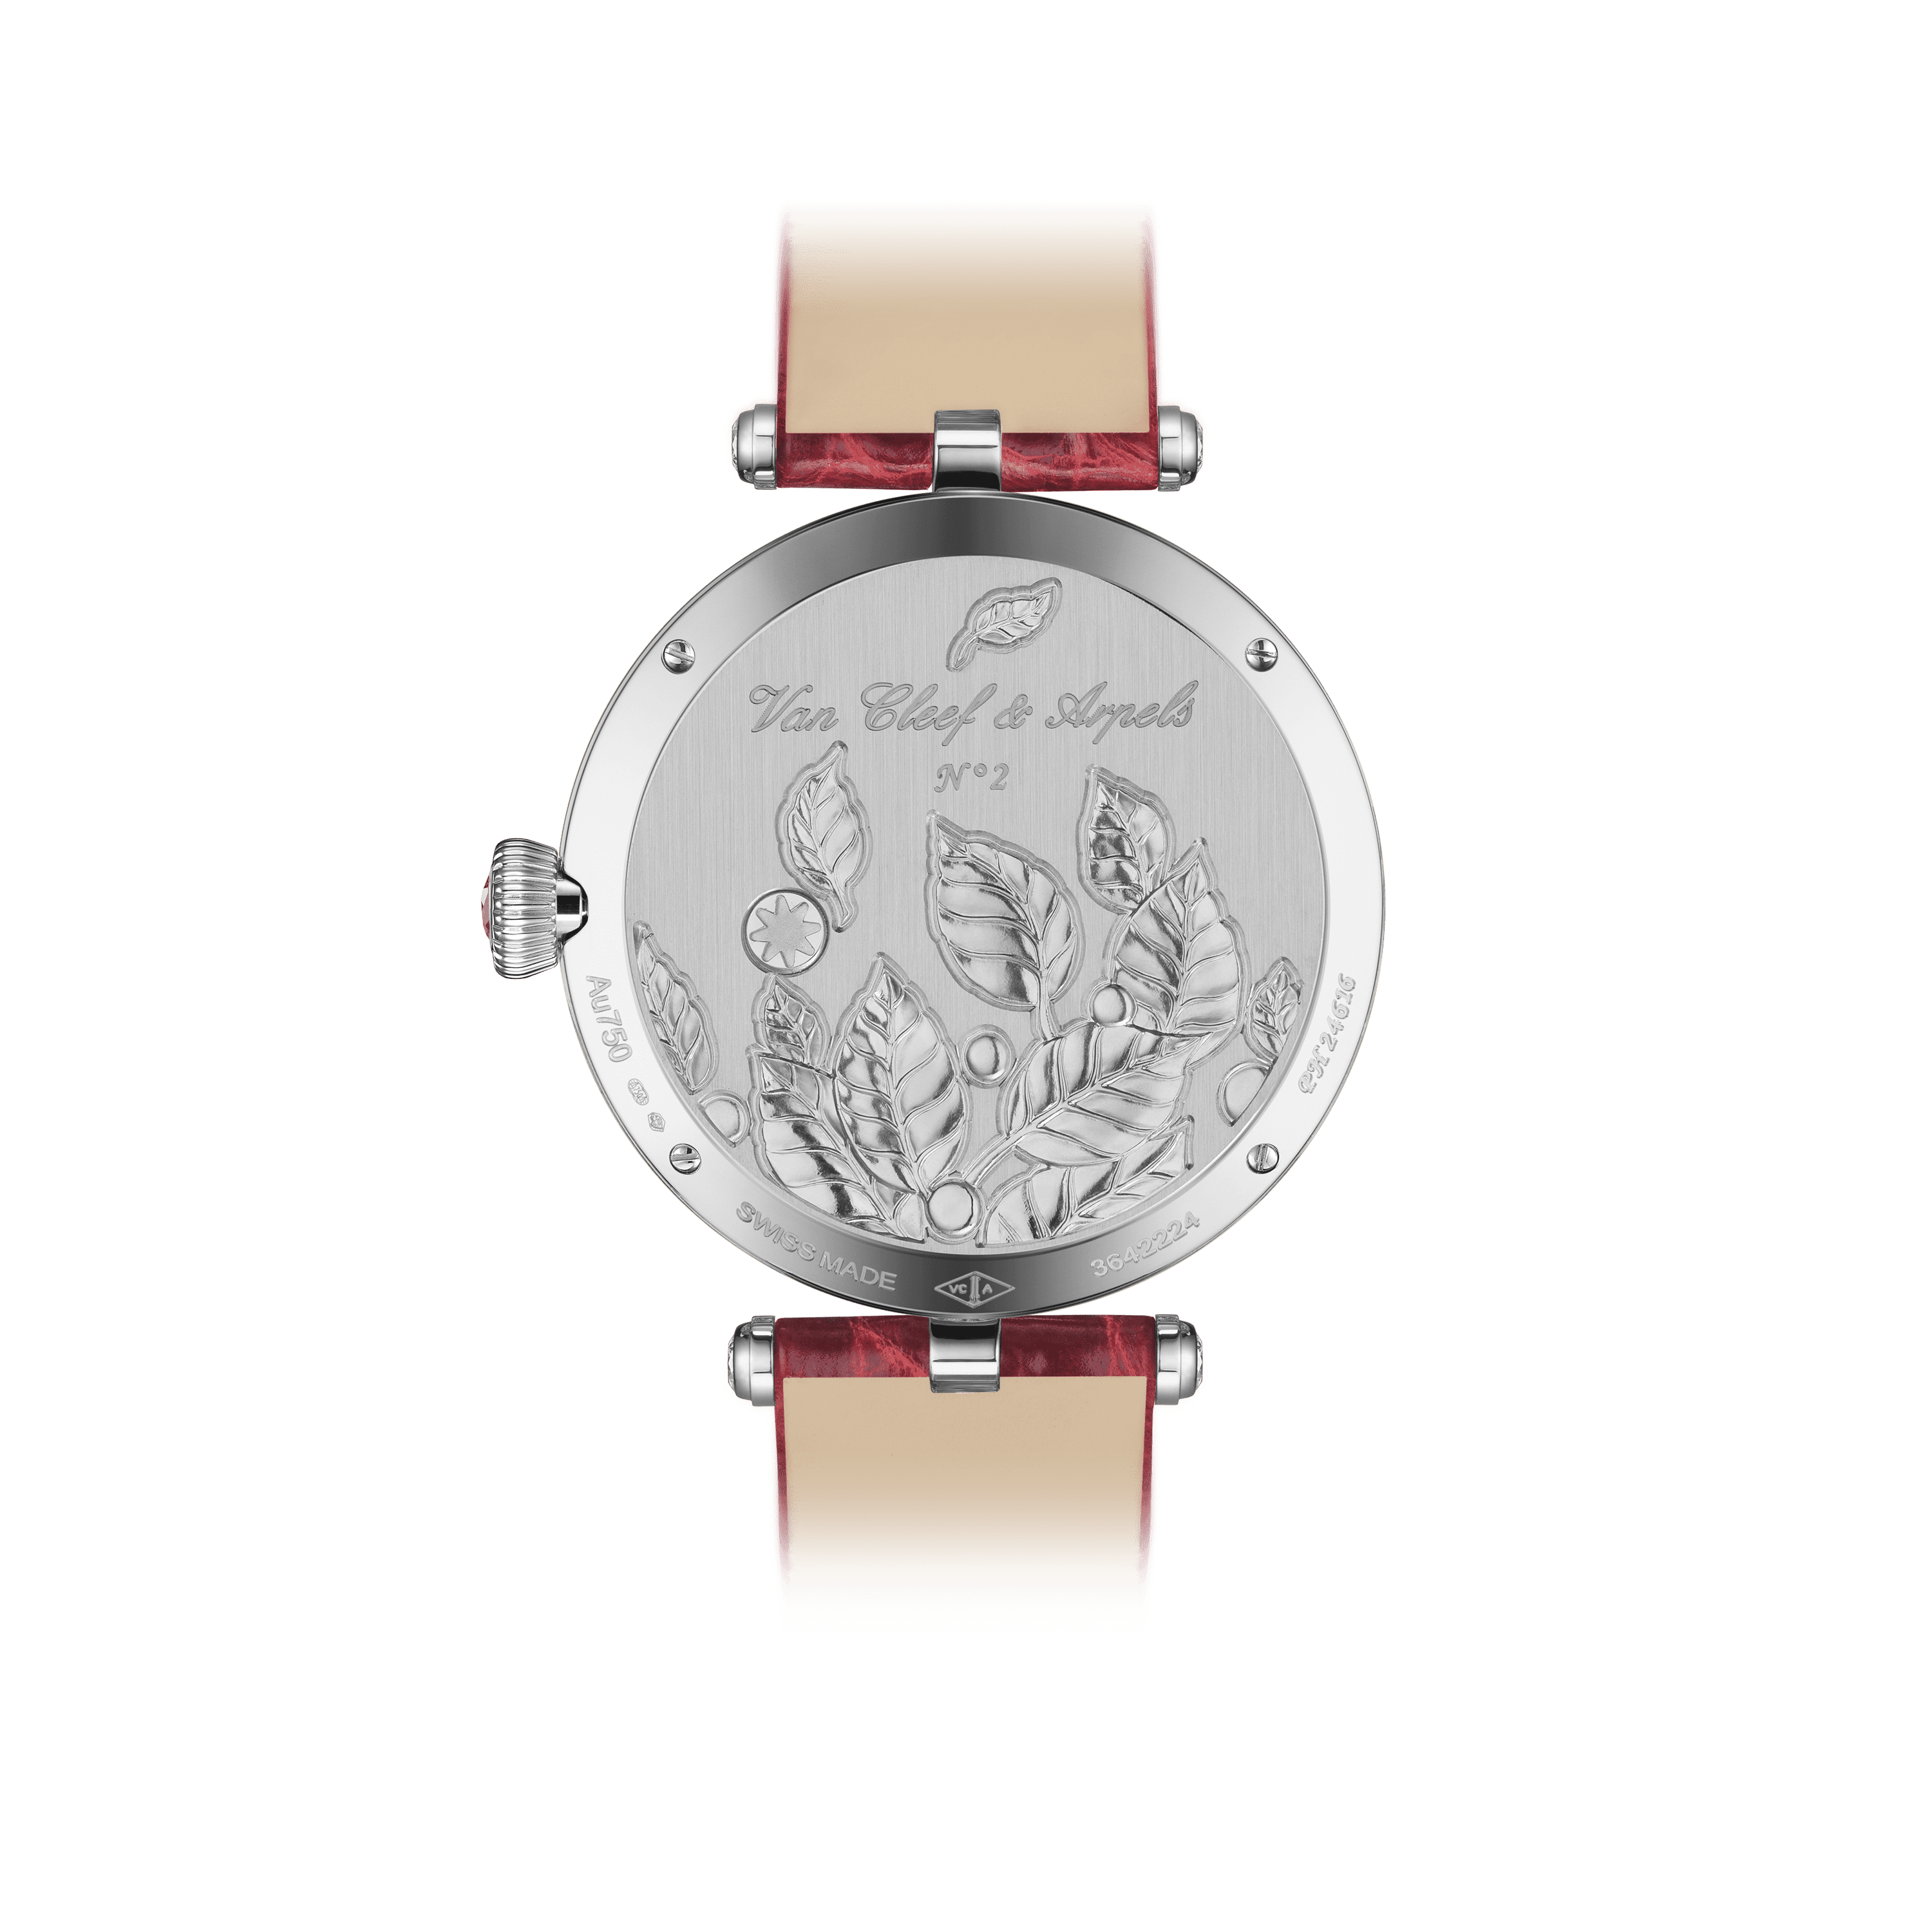 Lady Jour des Fleurs Watch,Alligator Shiny - Back View - VCARO8O000 - Van Cleef & Arpels